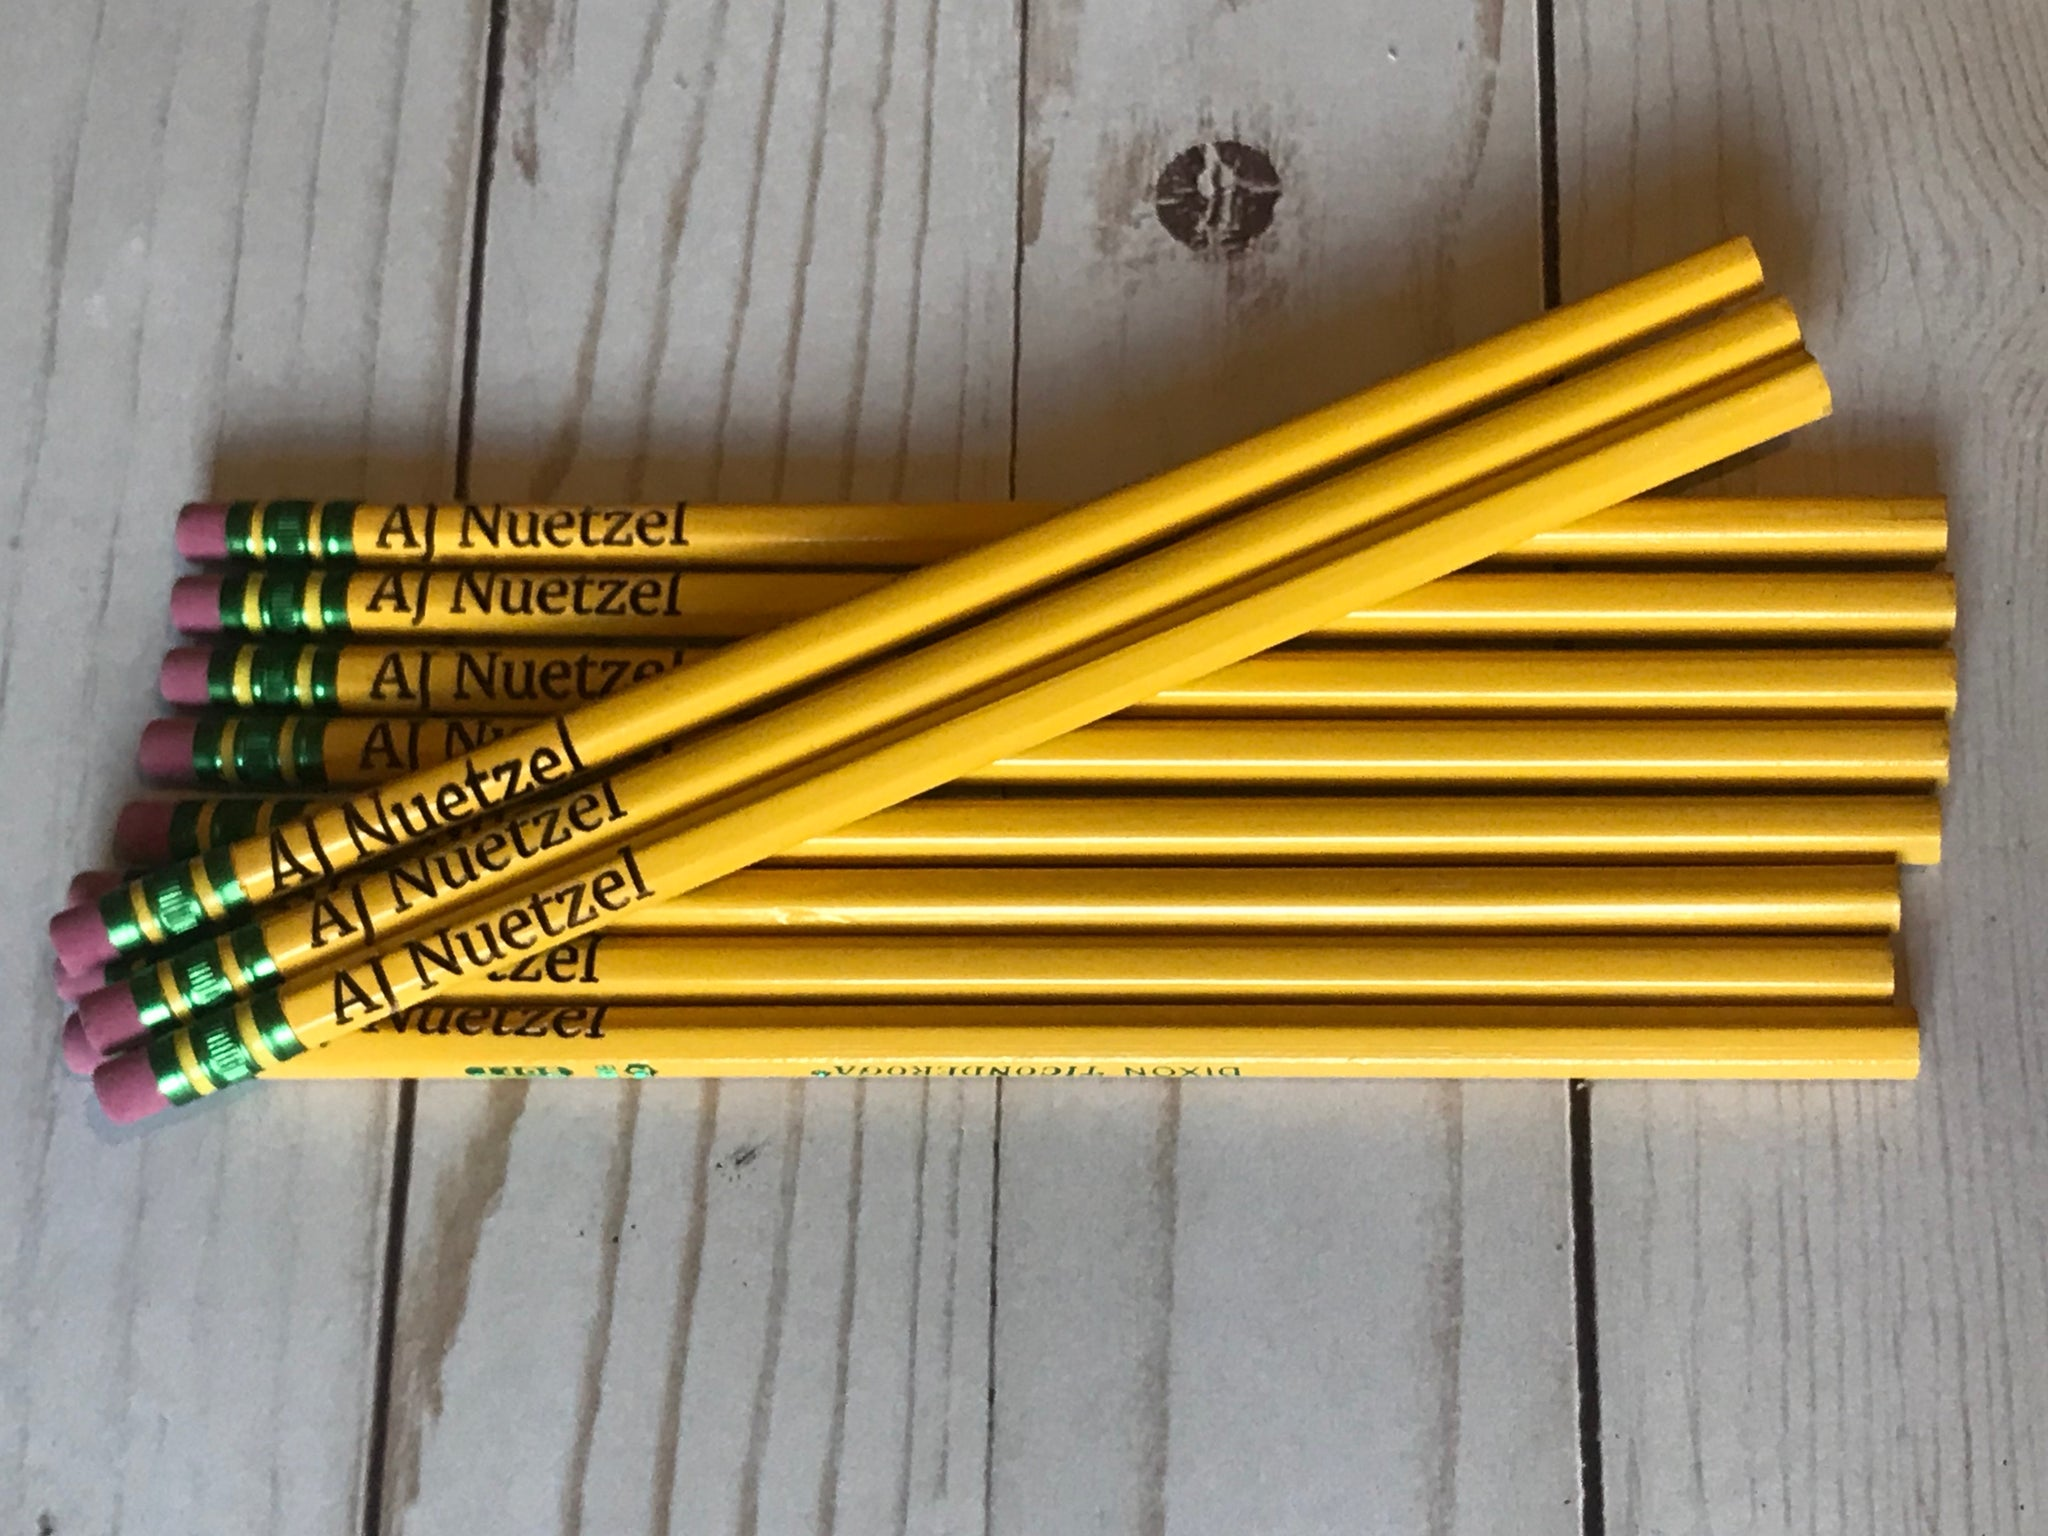 Personalized Engraved Pencils Set of 12